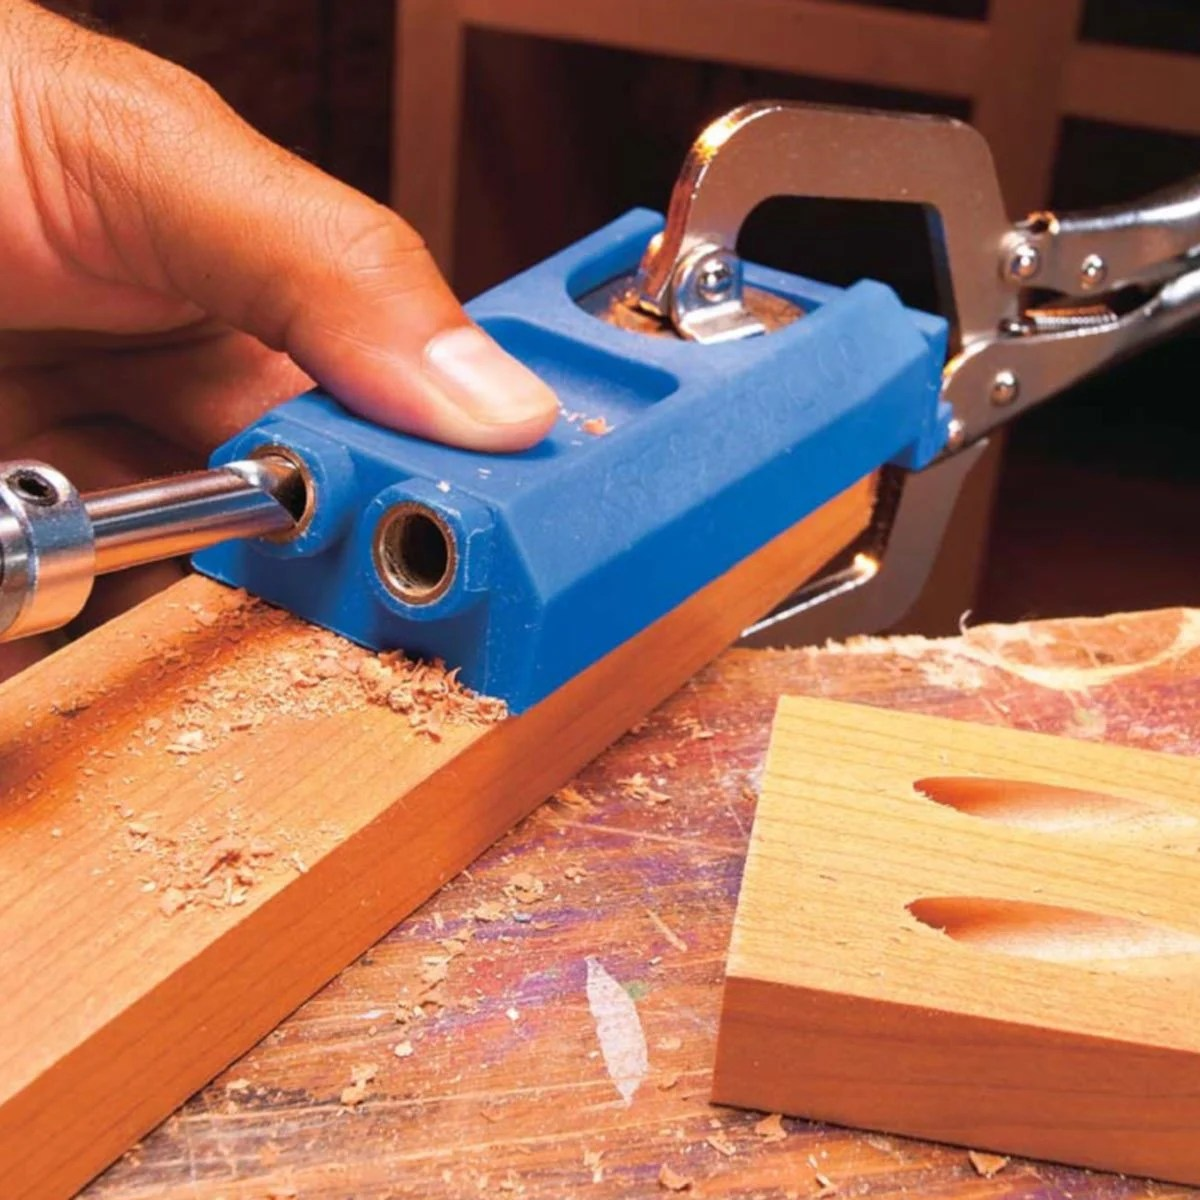 How To Drill Angled Holes For Chair Legs